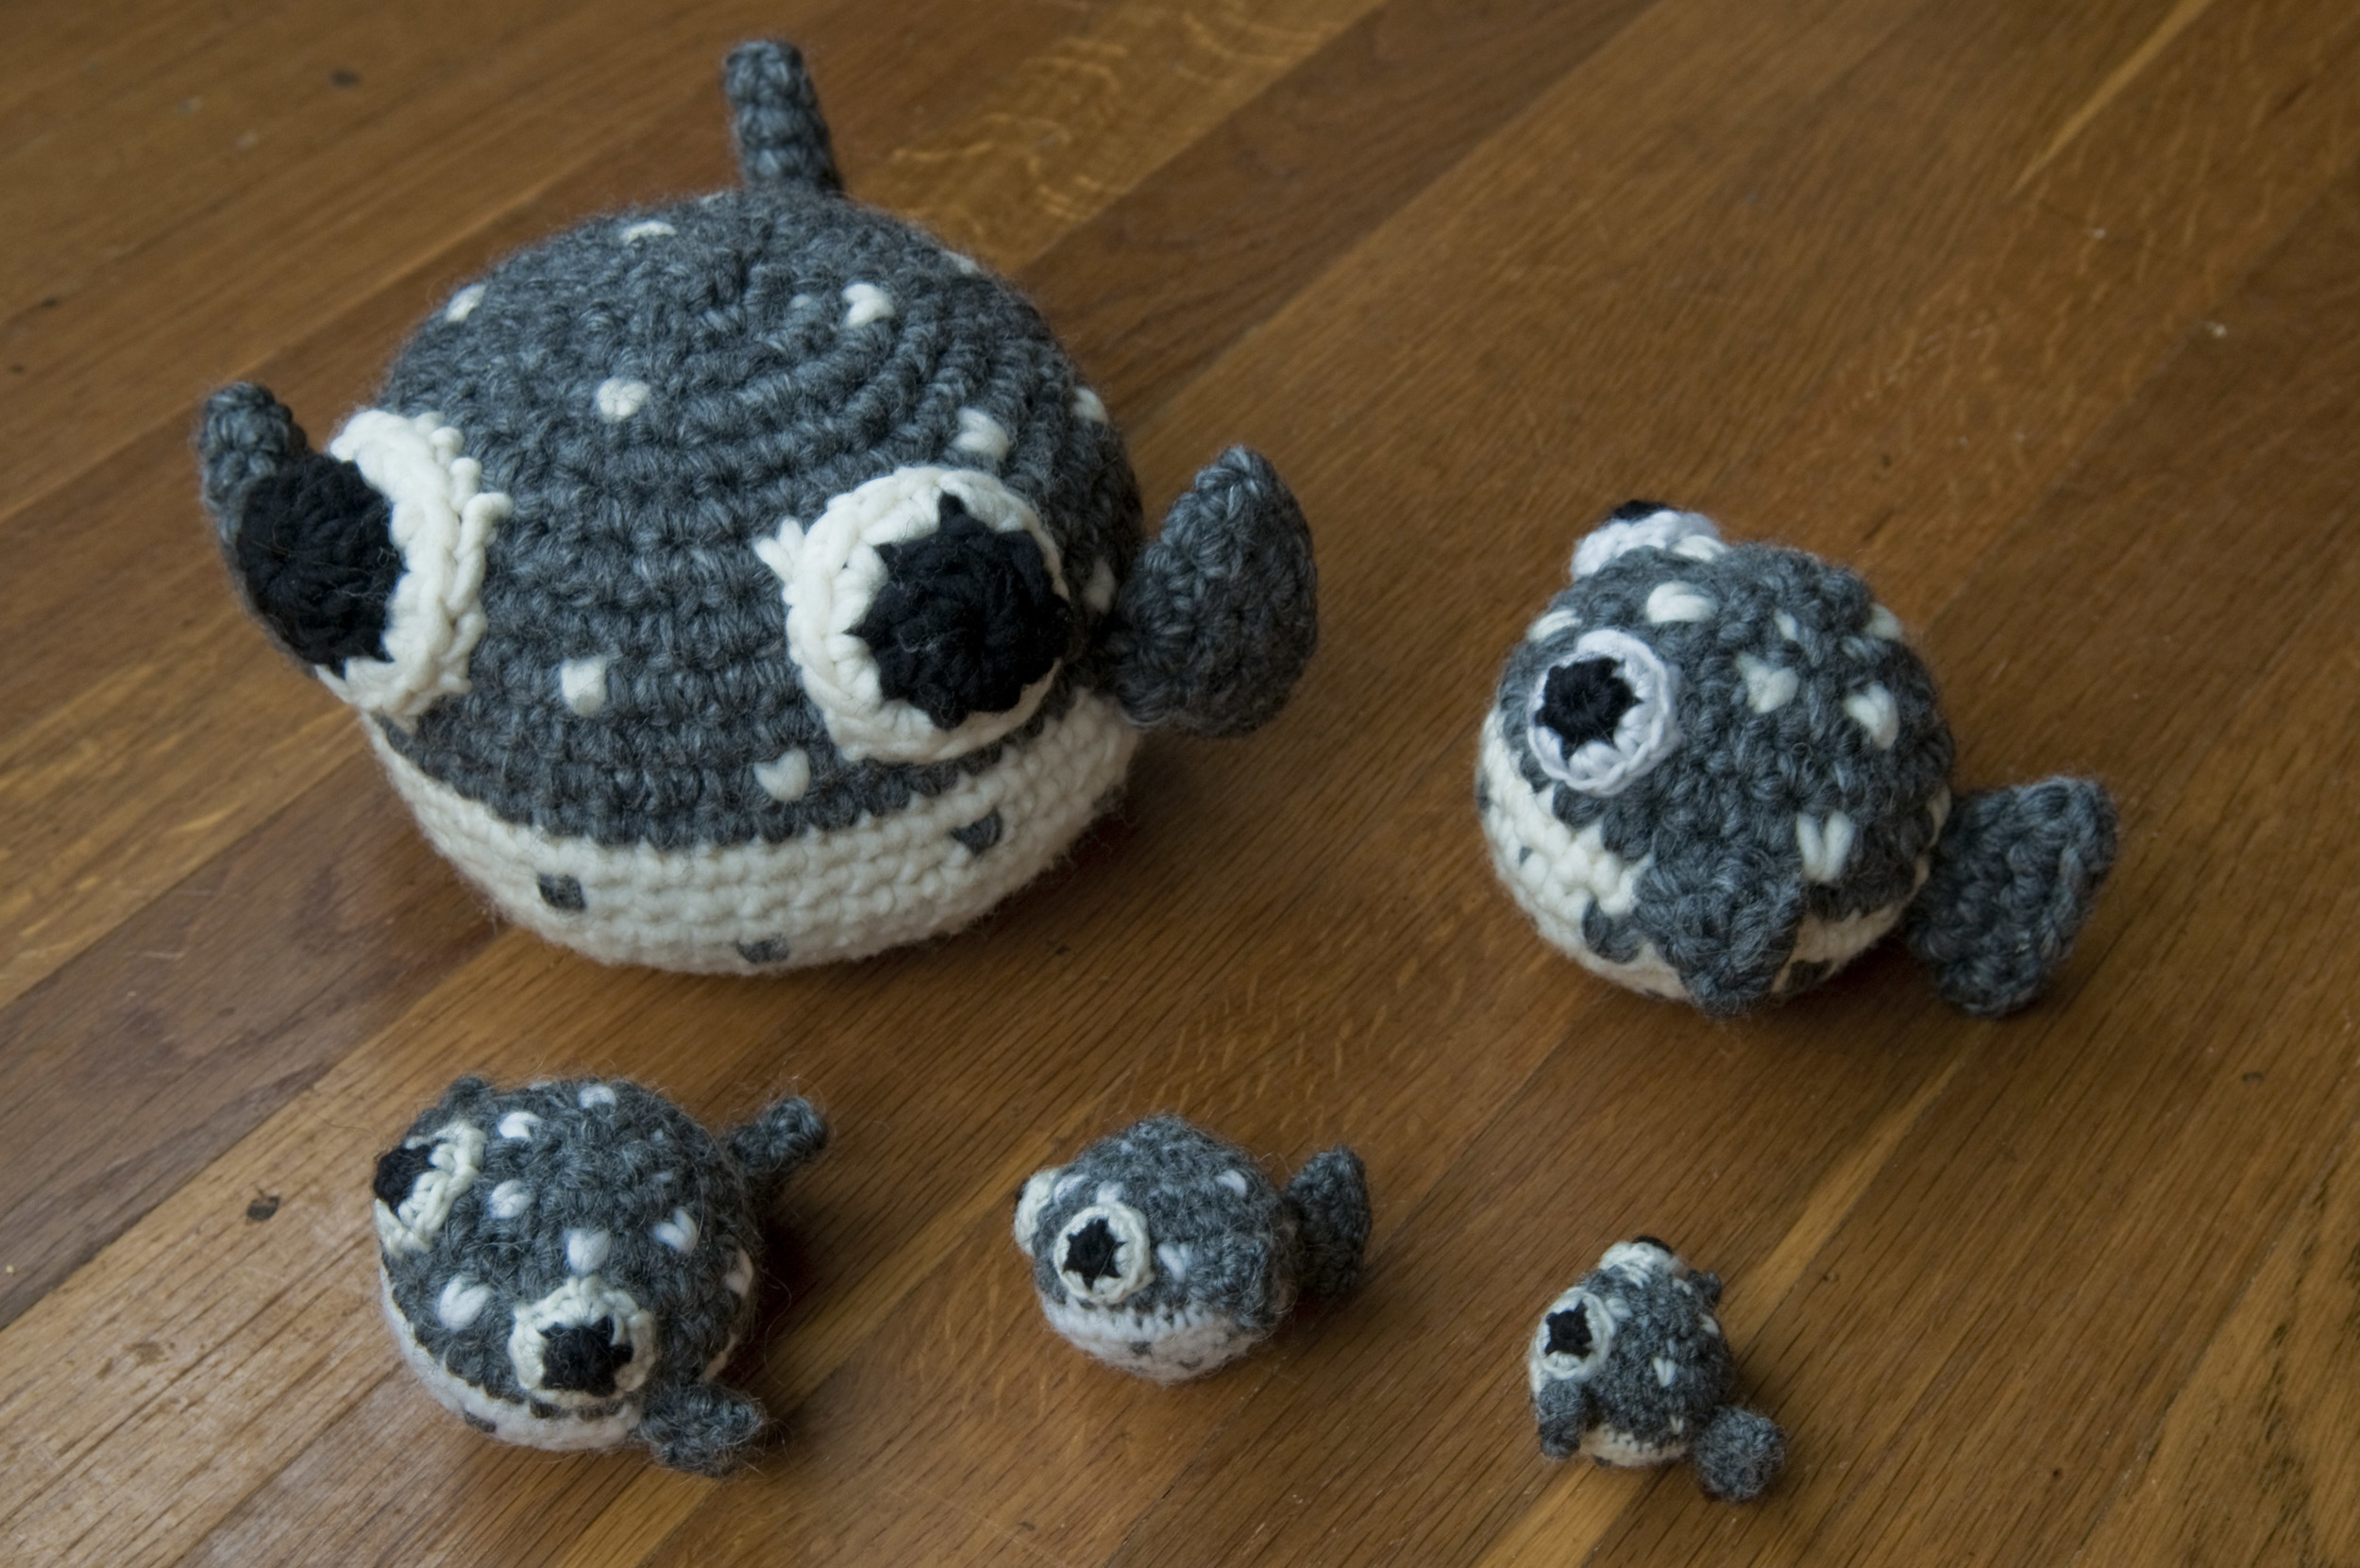 These are some pufferfish that I made. I made several so that I could find the right size.